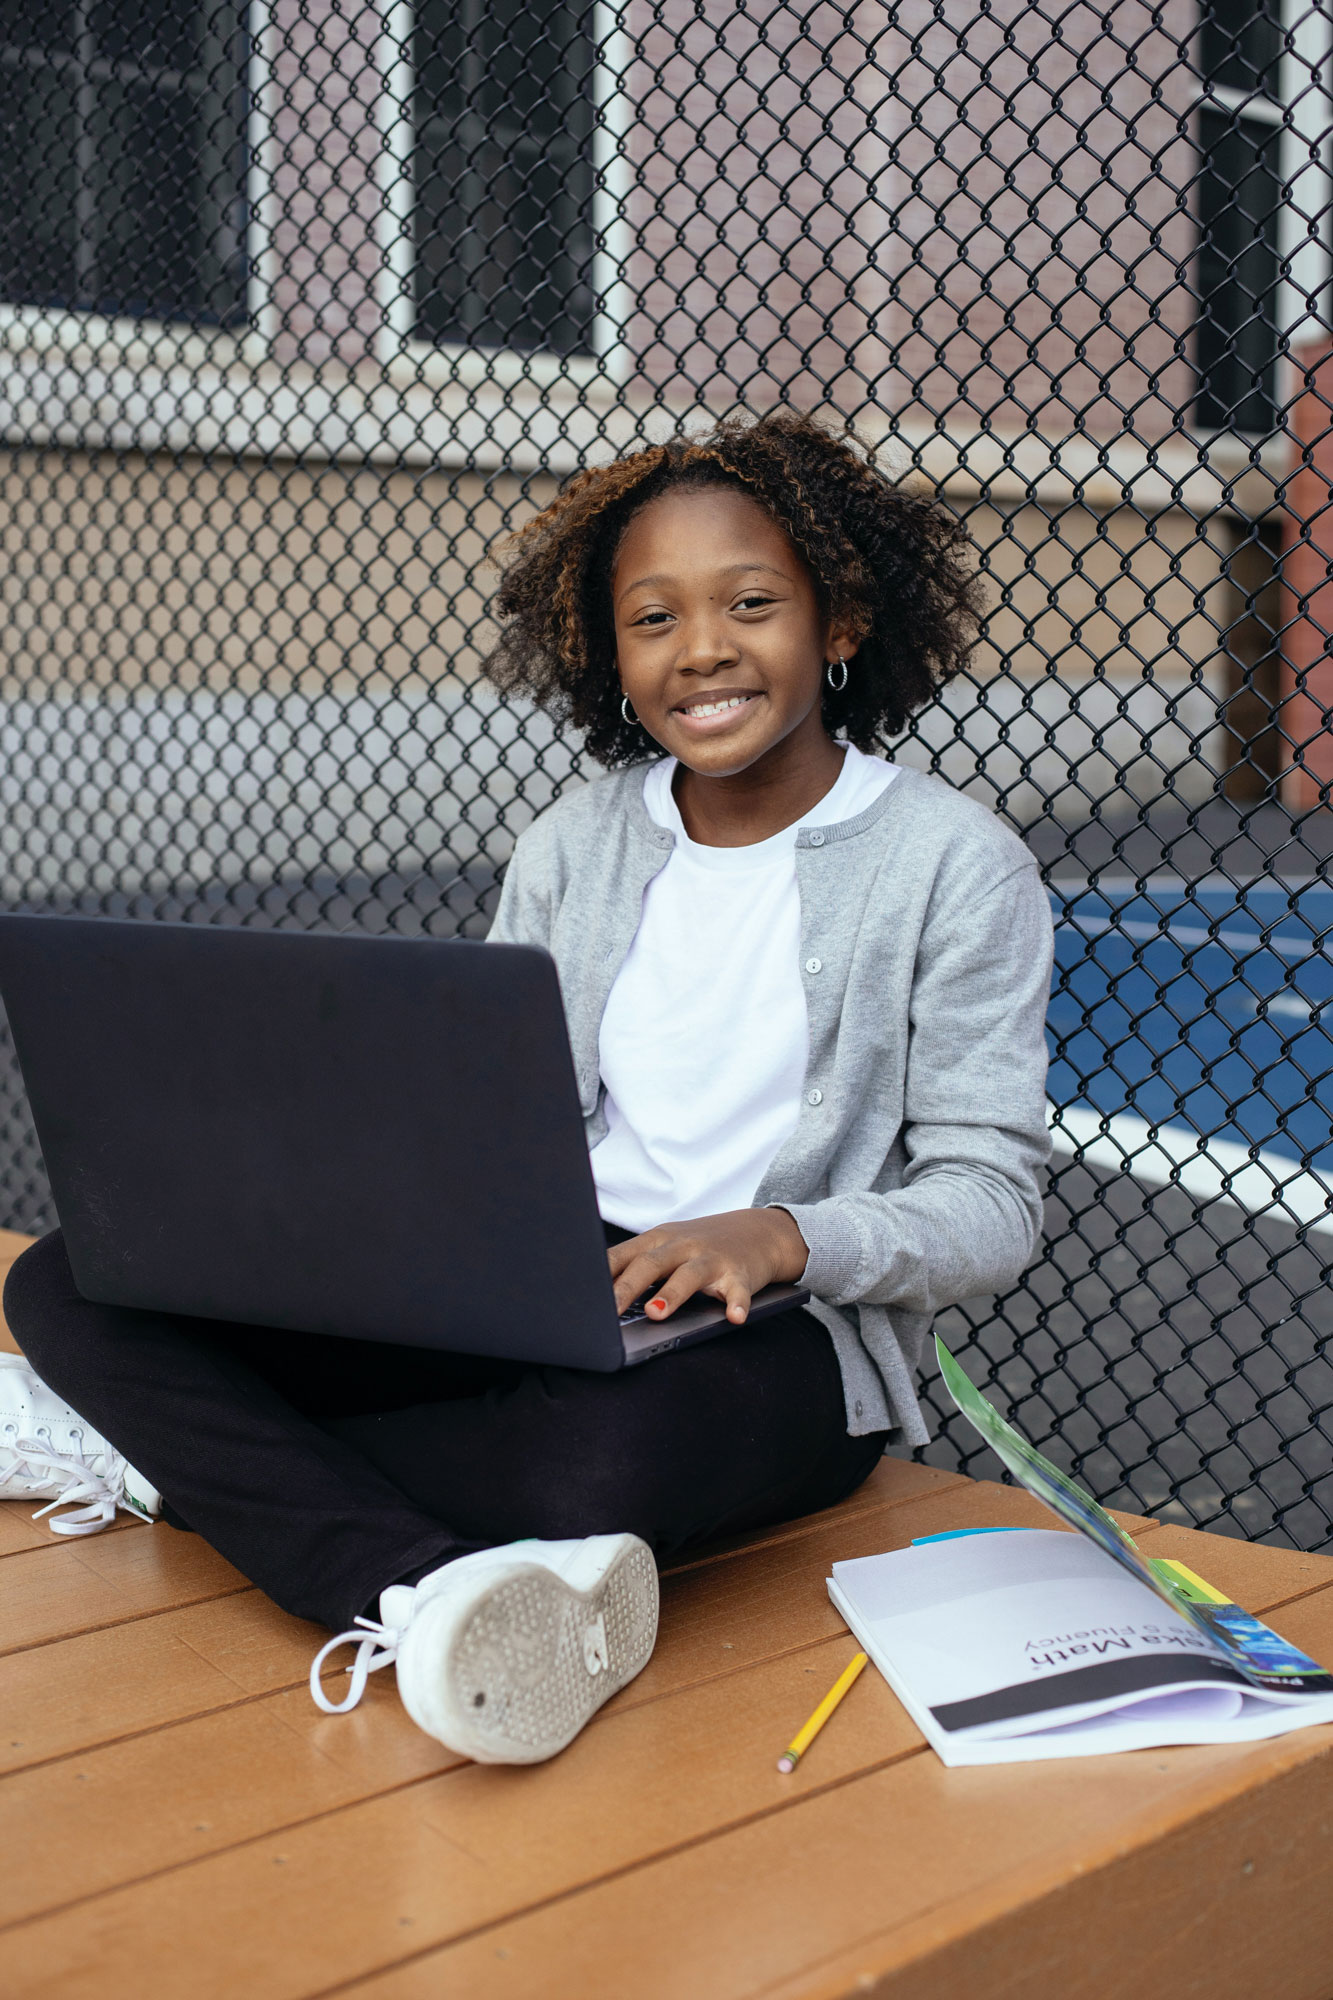 A cute teen smiling and holding a computer